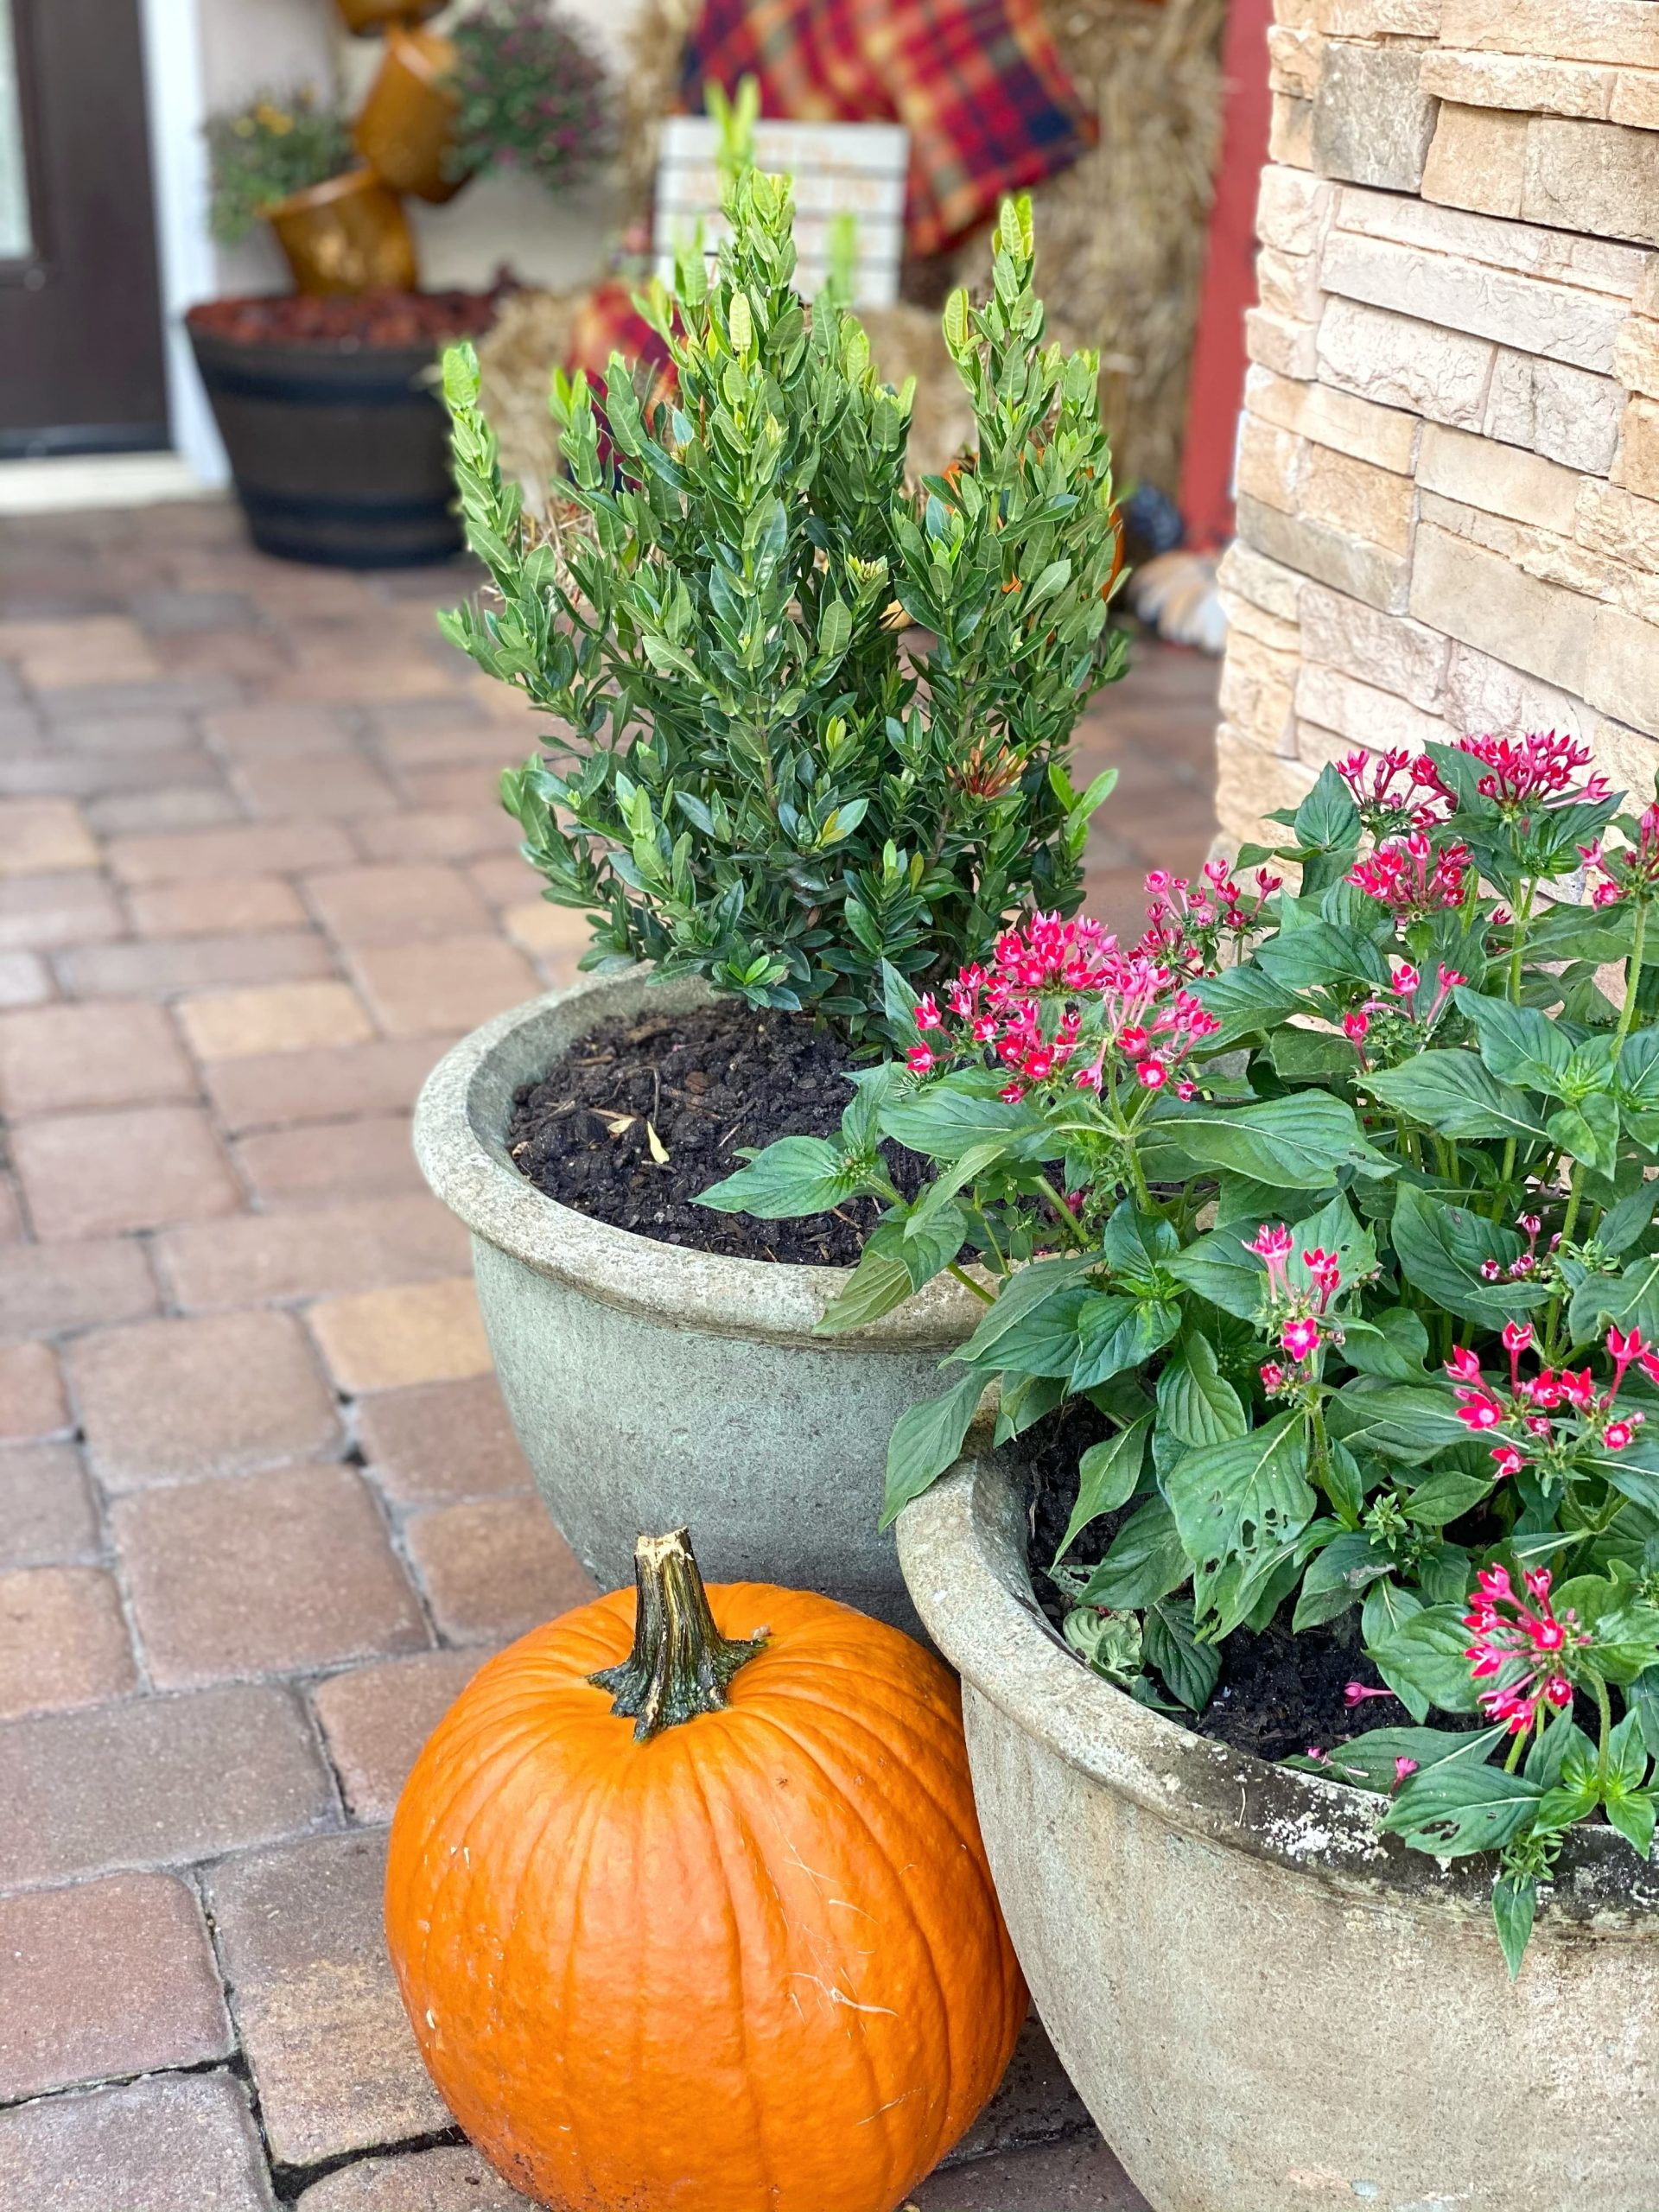 pumpkin by flower pot